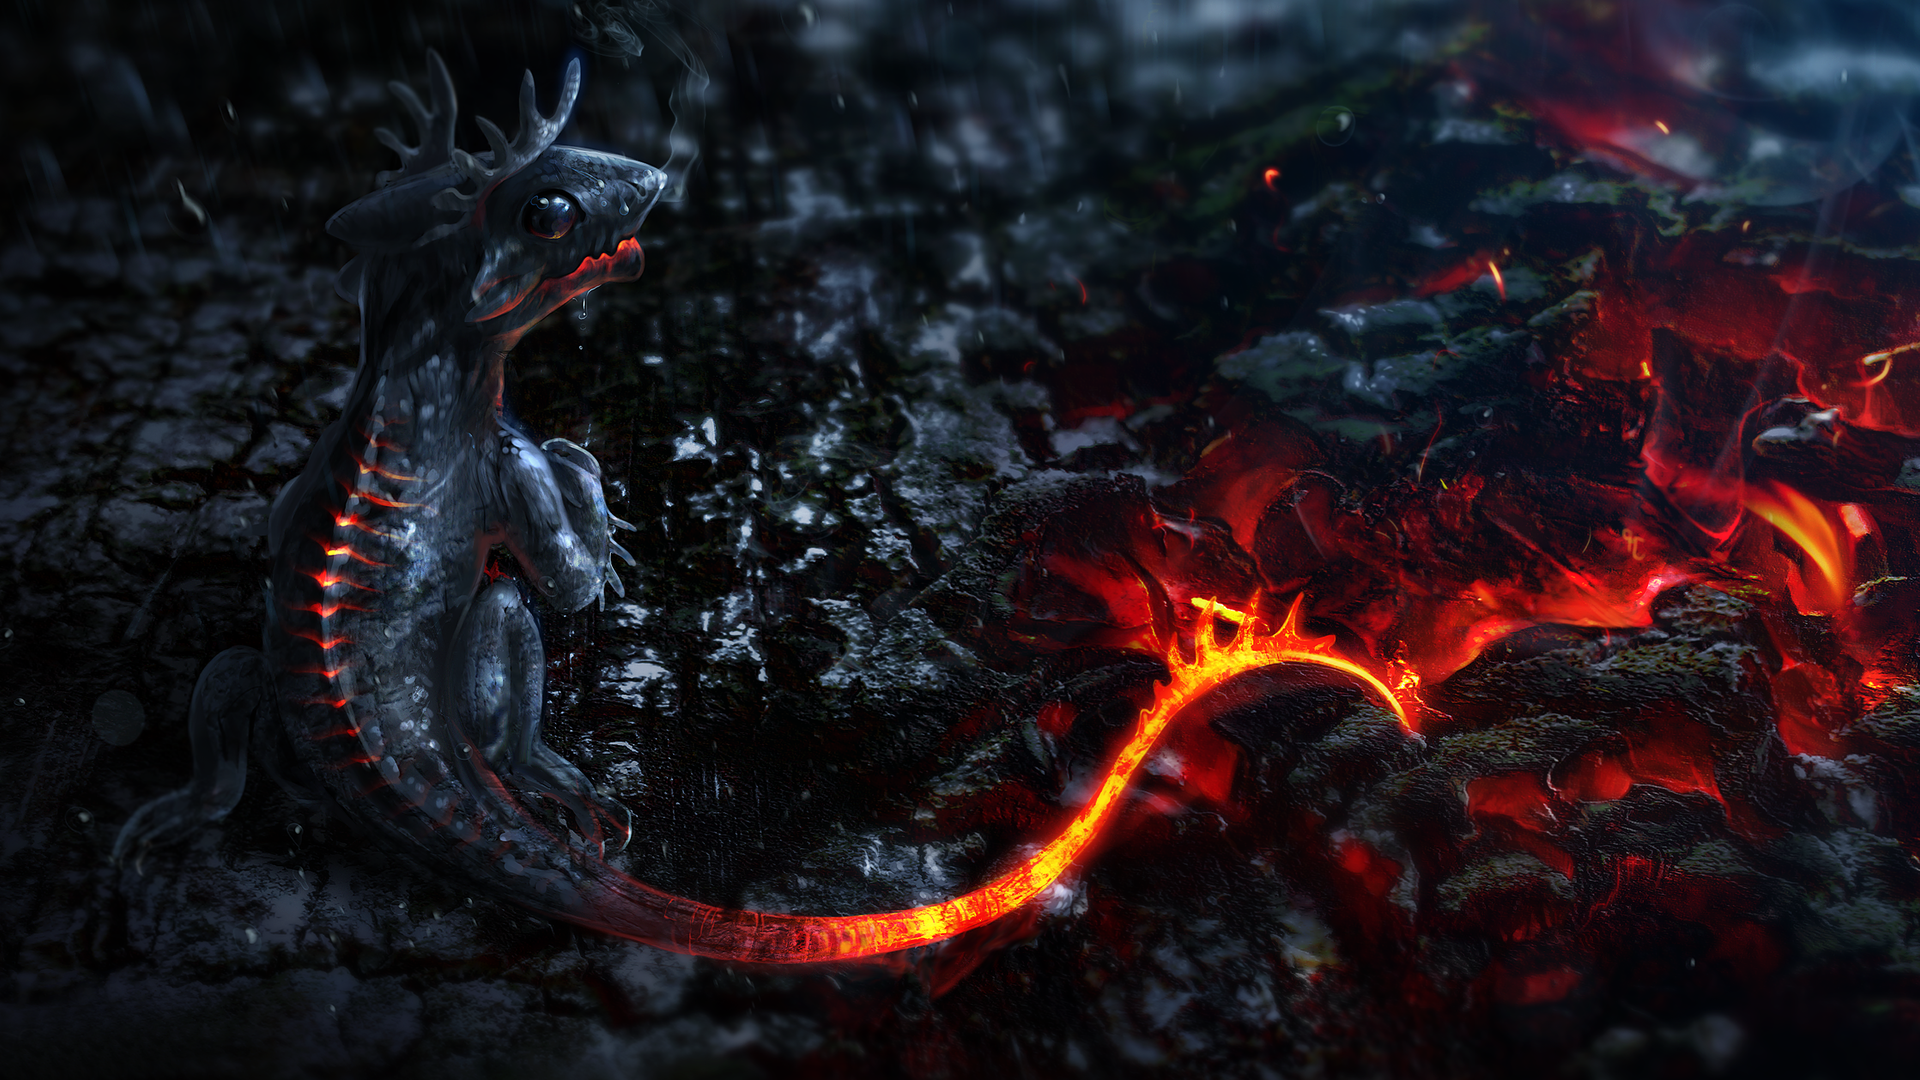 Desktop Wallpapers 1920x1080 Dragon Desktop Wallpaper